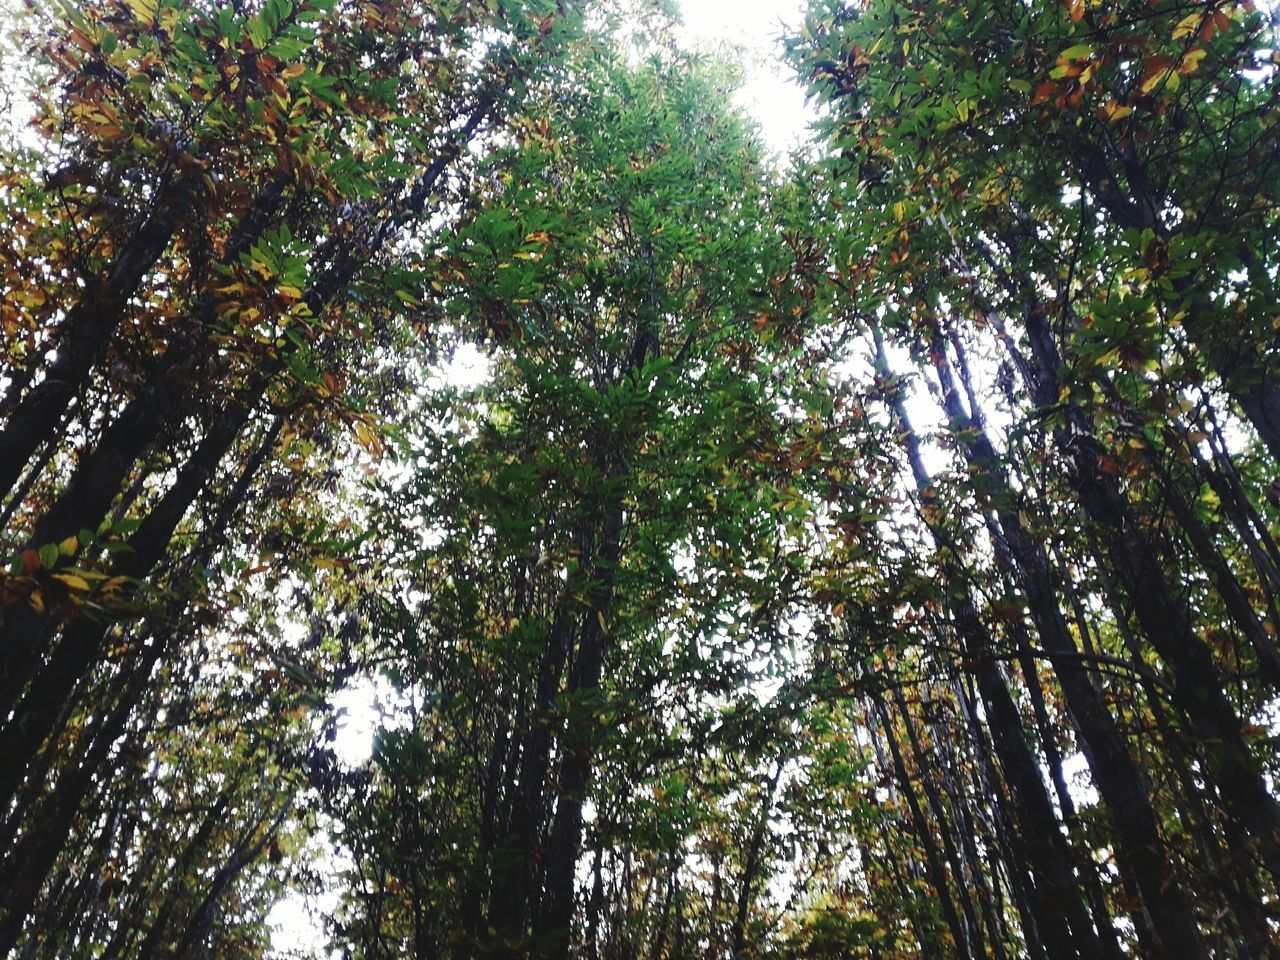 tree, low angle view, growth, nature, forest, beauty in nature, day, tree trunk, outdoors, branch, tranquility, no people, scenics, tranquil scene, bamboo - plant, sky